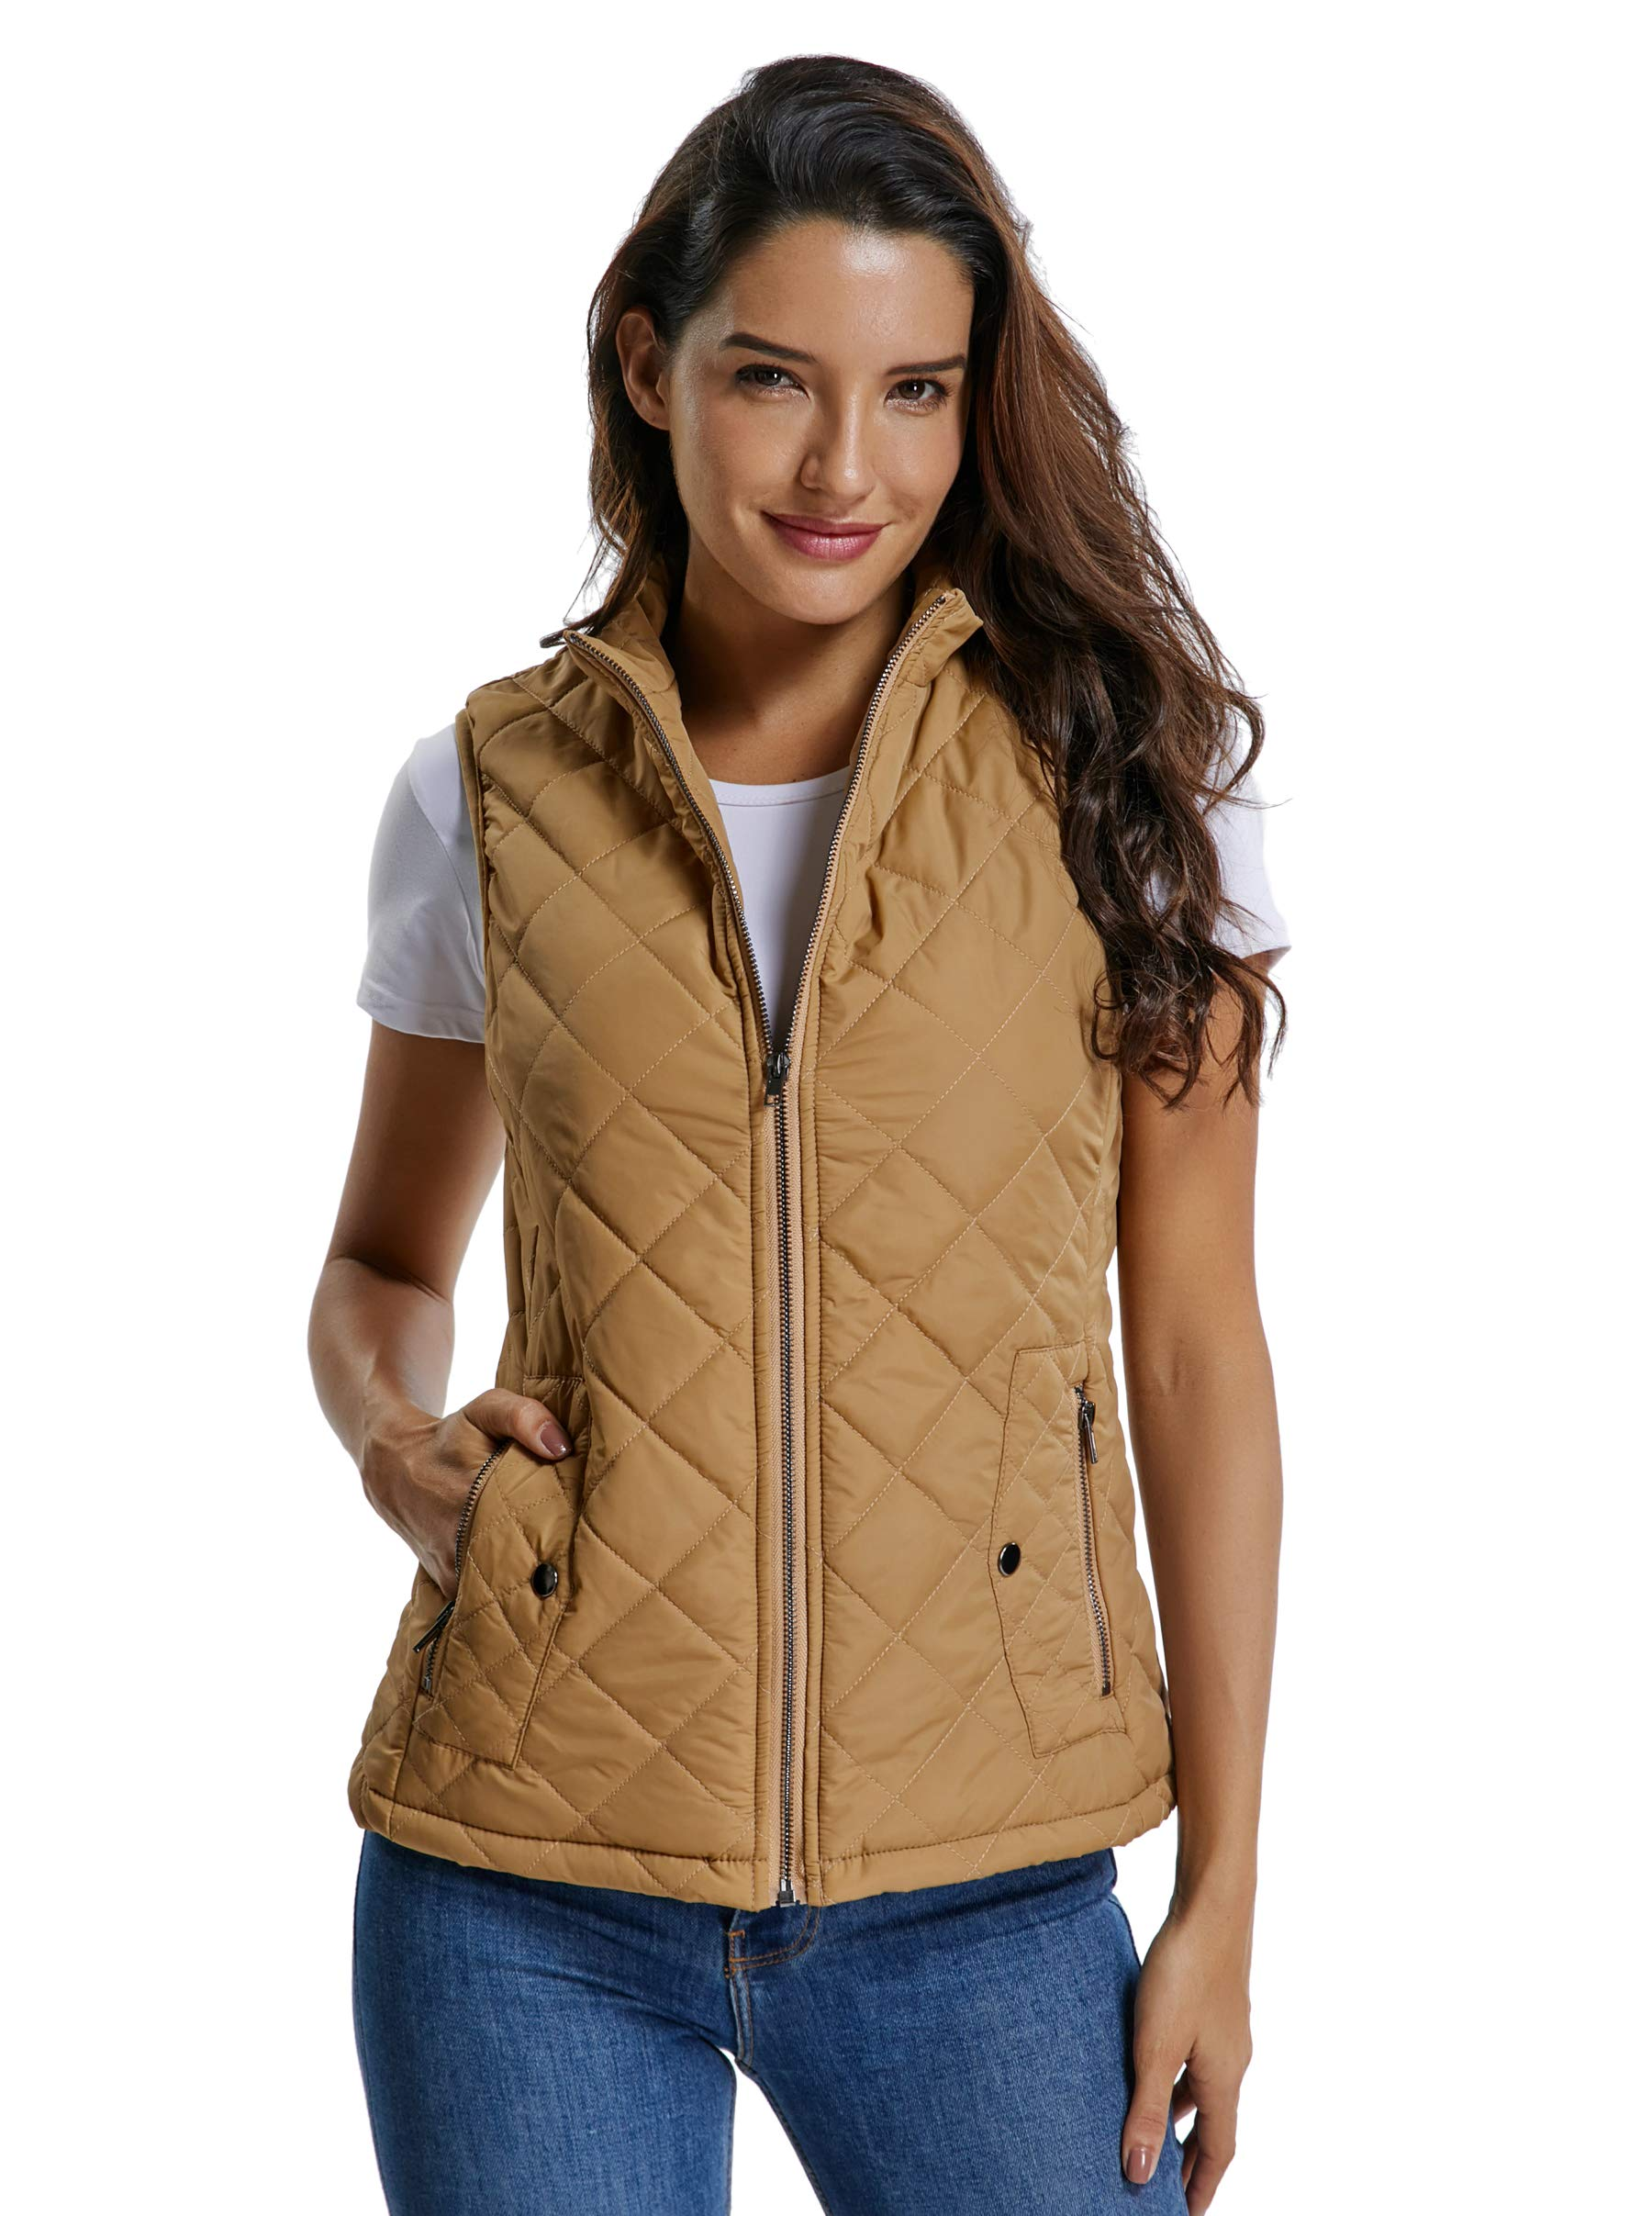 MISS MOLY Women's Lightweight Quilted Zip Vest Stand Collar Gilet Padded Sleeveless Vest-Camel L by MISS MOLY